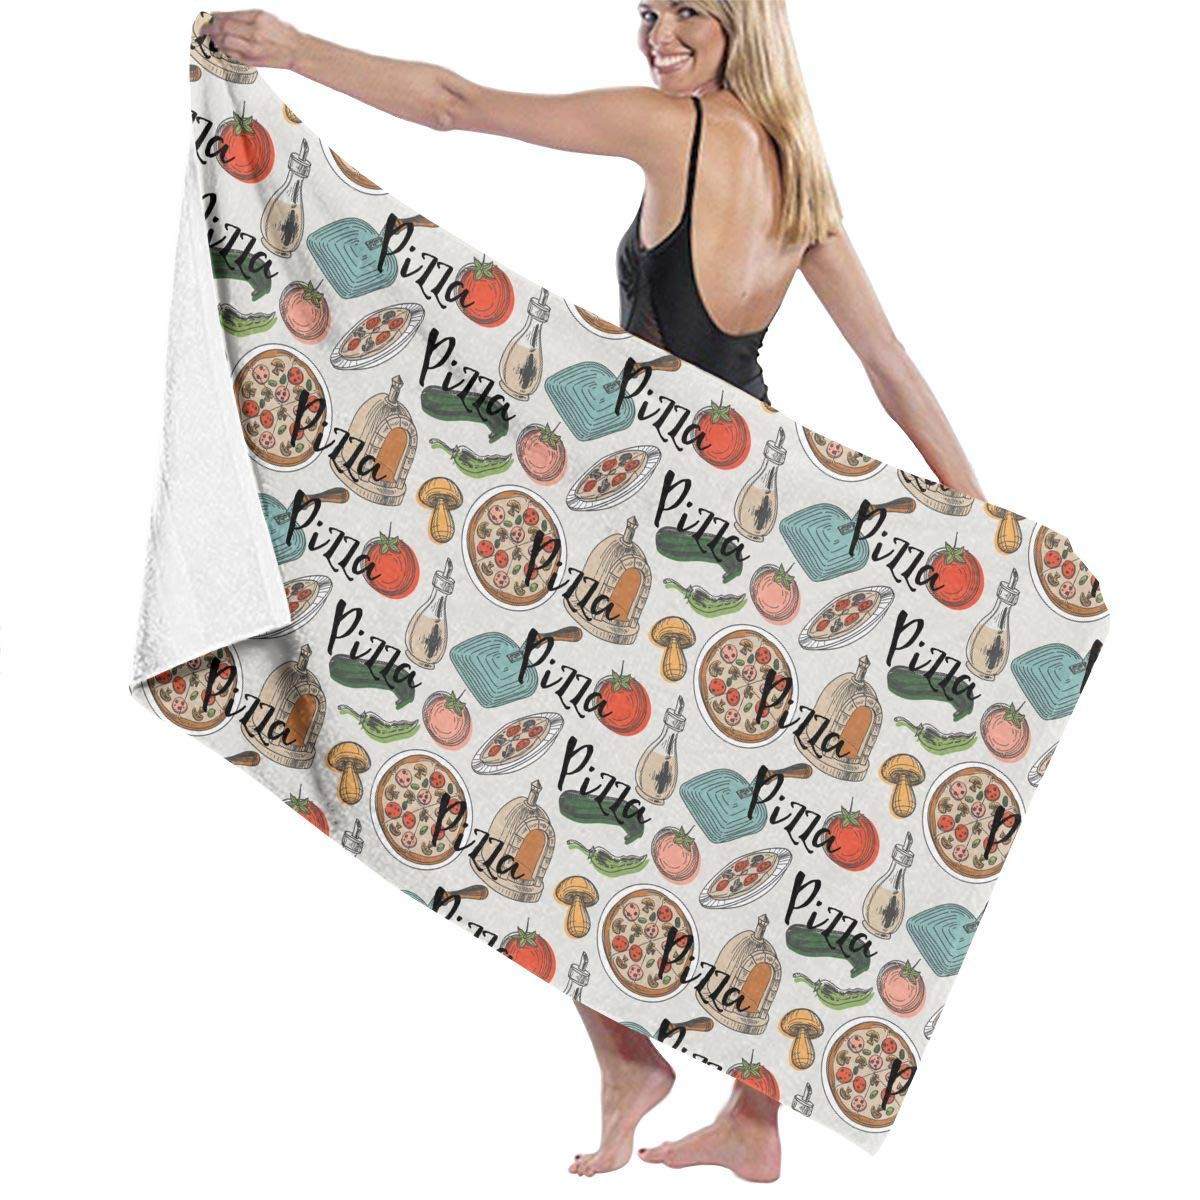 b443a930ba Amazon.com  Thigh Gap Three Slices Pizza Same Thing Prints Bath Towel Wrap  Womens Spa Shower and Wrap Towels Swimming Bathrobe Cover Up for Ladies  Girls ...